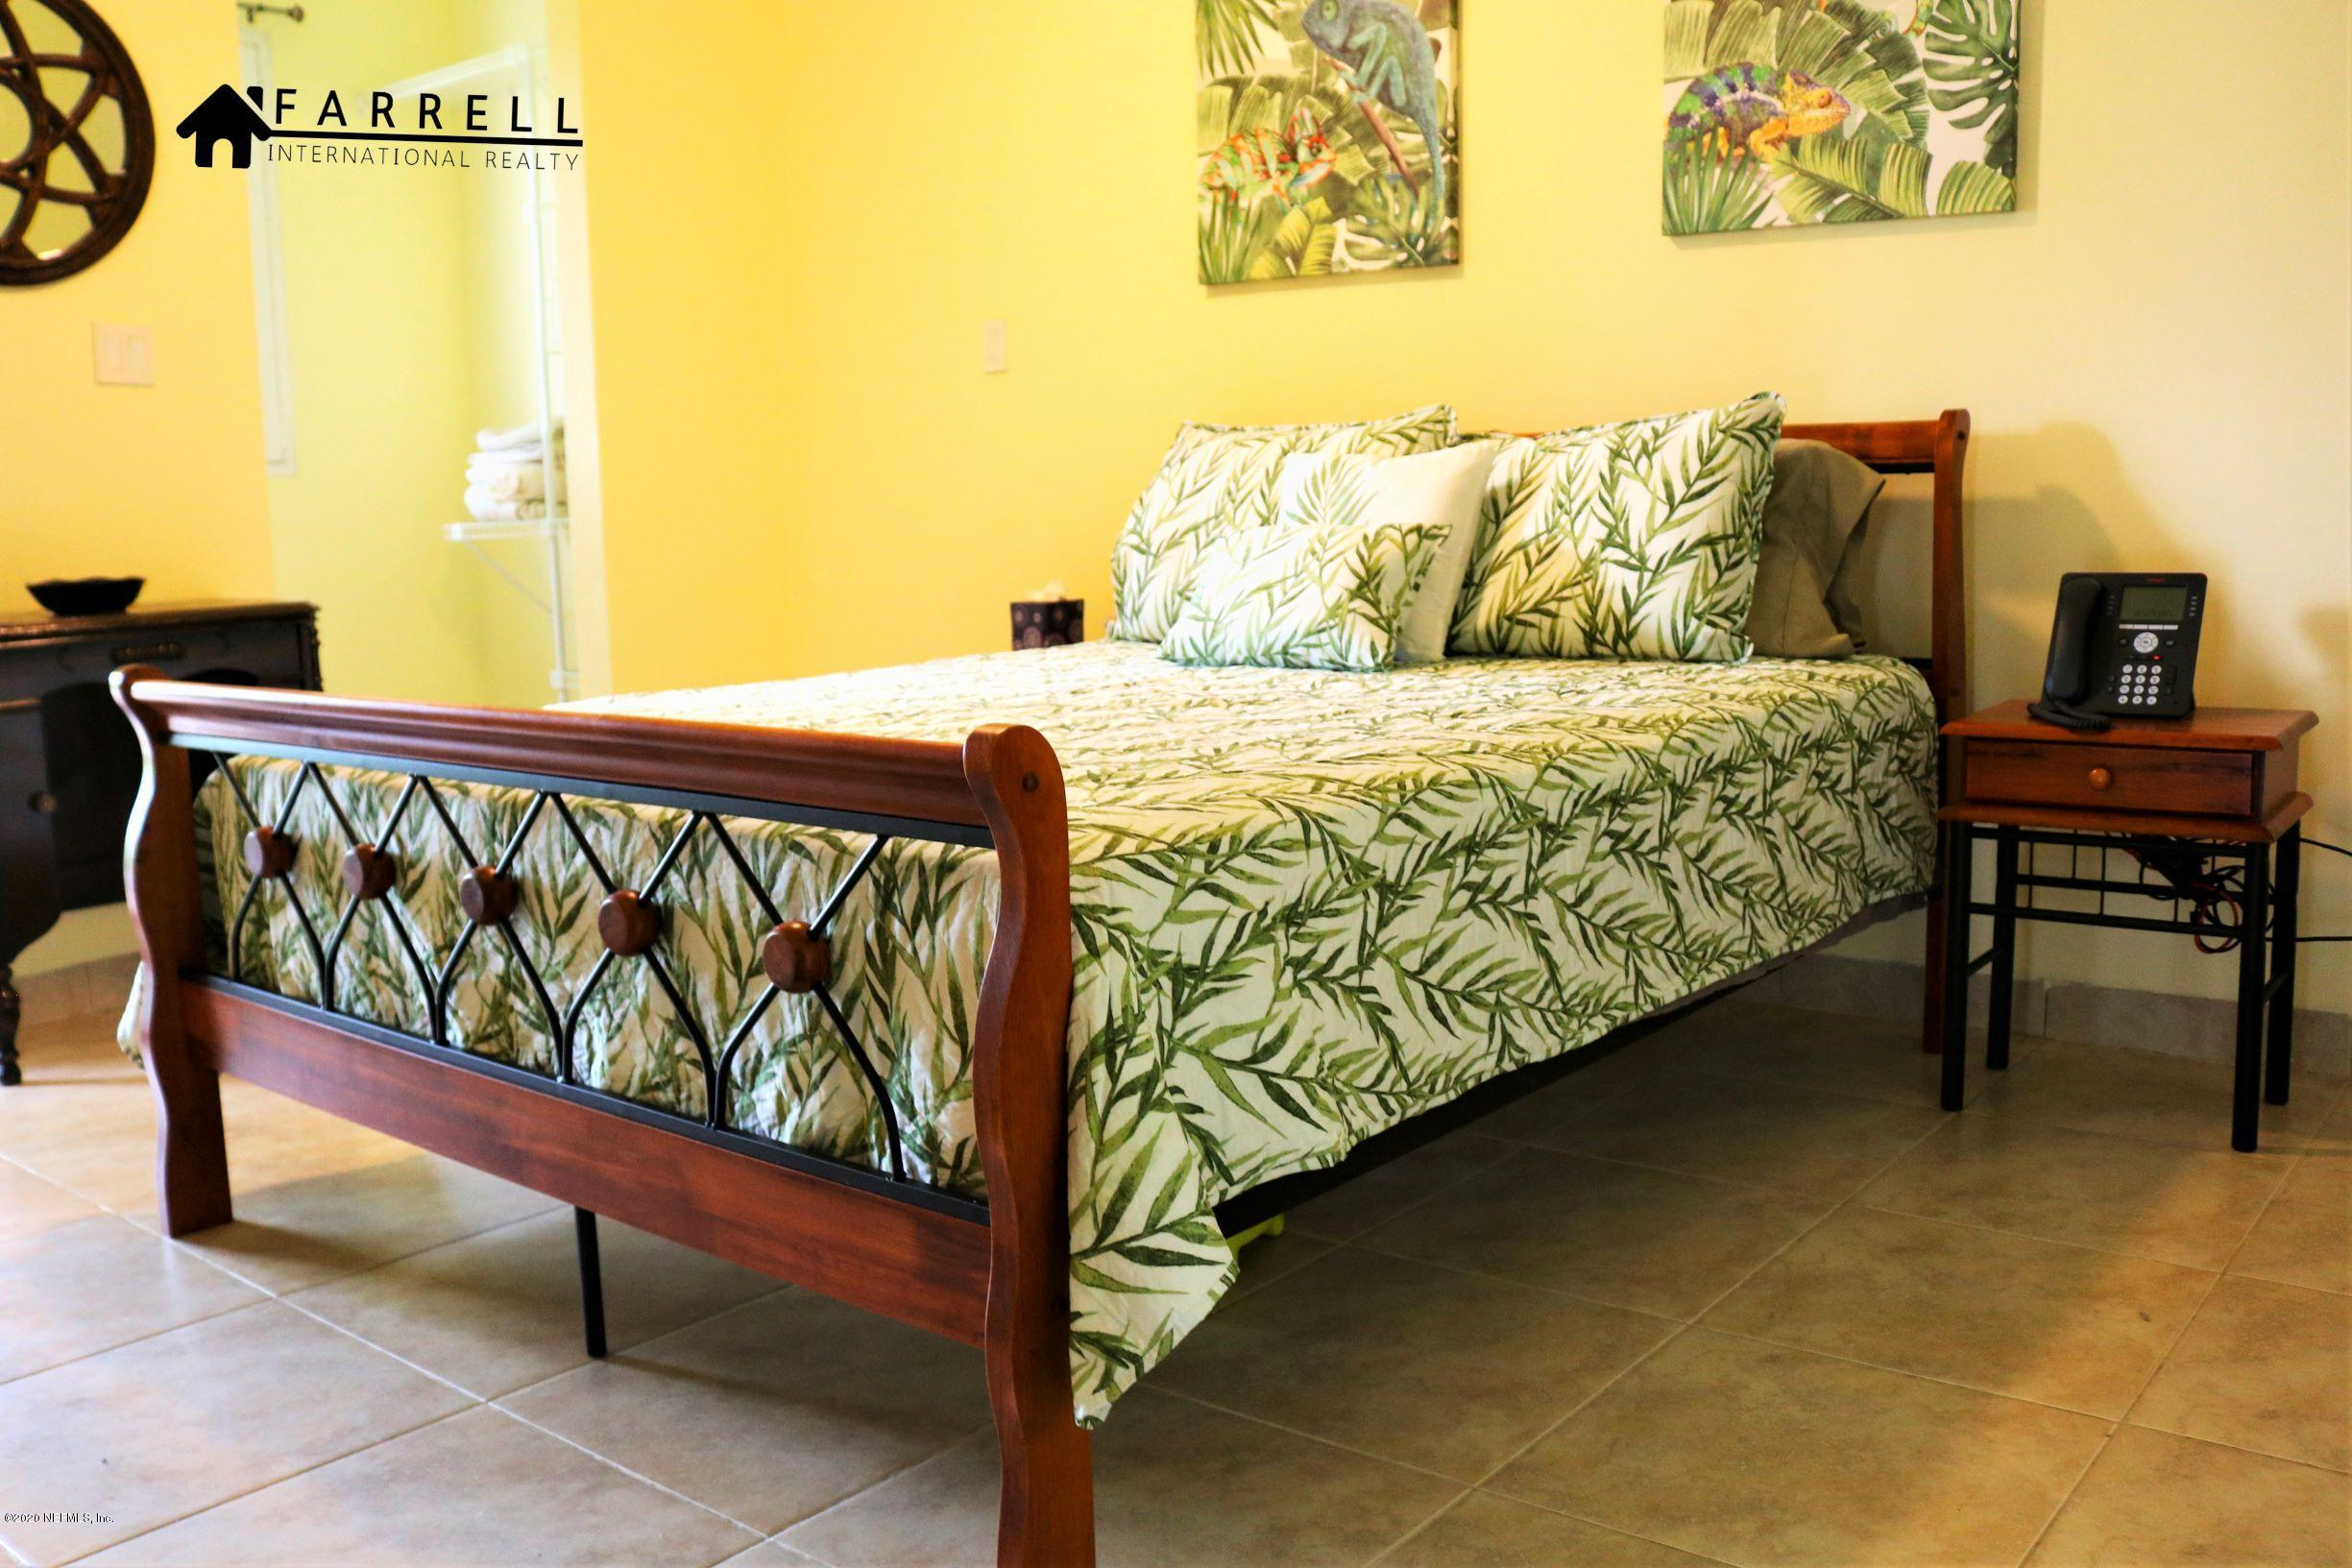 24A-100B MASTERS, COCOLI, PANAMA OESTE 10001, 2 Bedrooms Bedrooms, ,2 BathroomsBathrooms,Residential,For sale,MASTERS,1037695